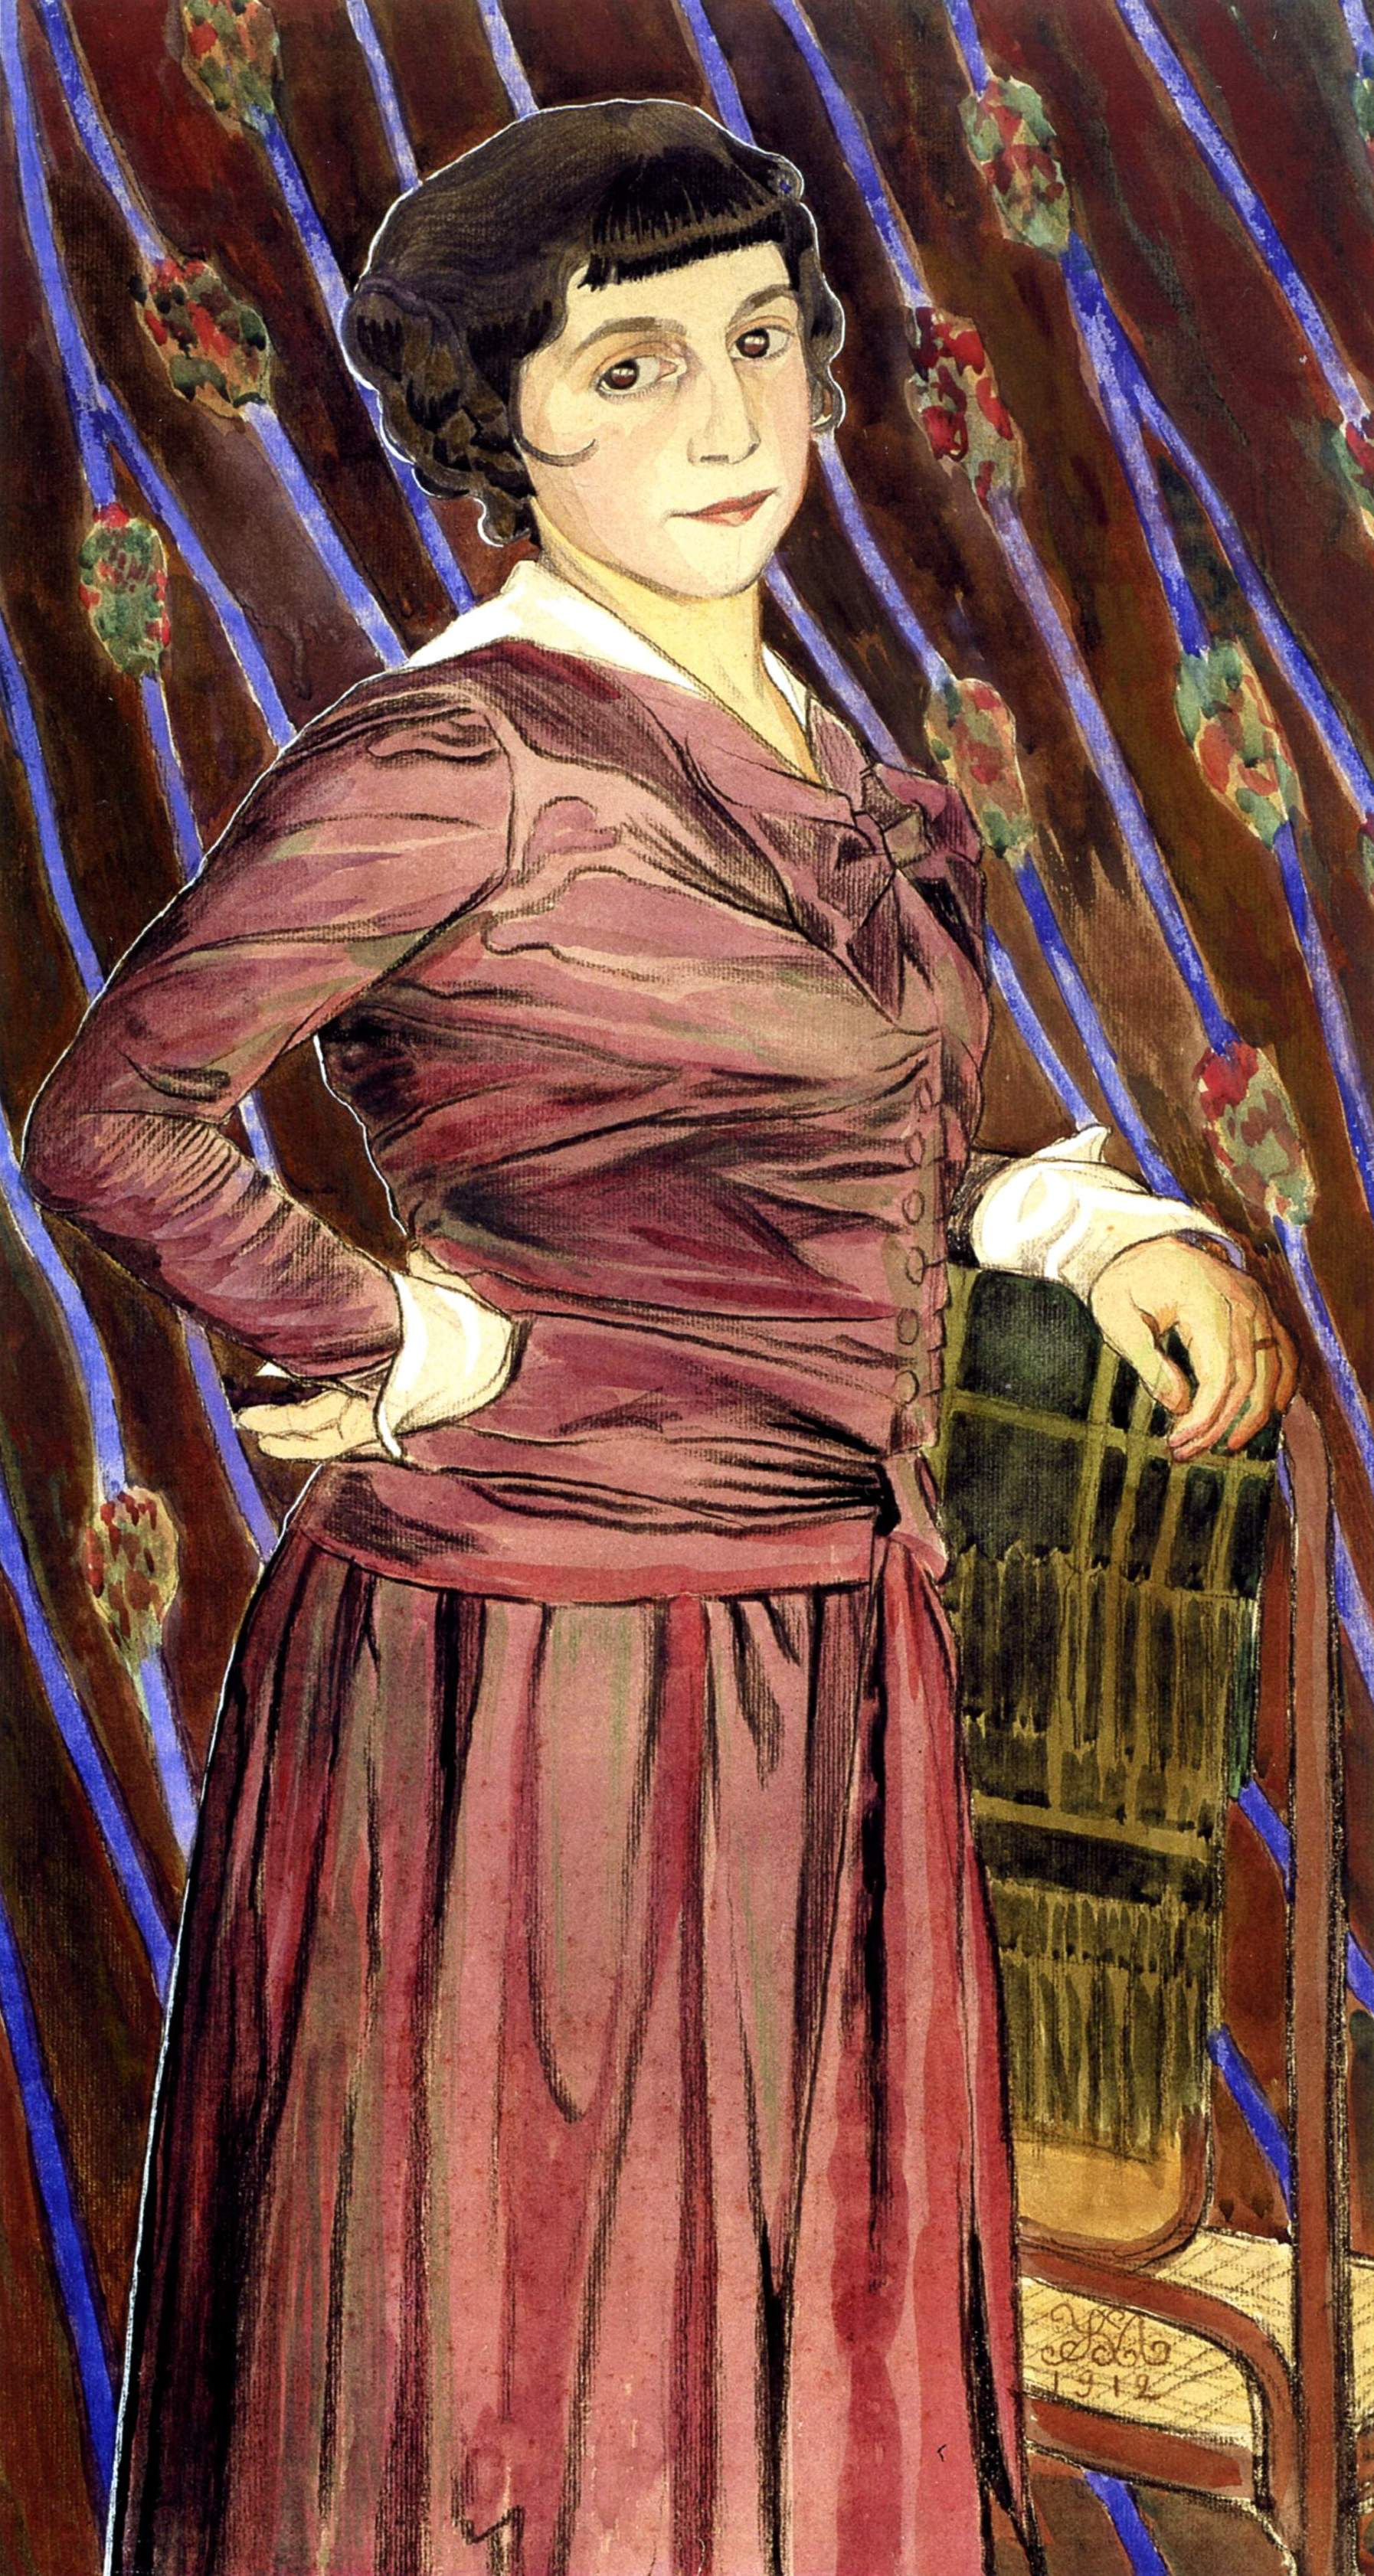 Mikhail Ivanovich the Beetle. Portrait of an Unknown Woman in a Brown and Purple Dress